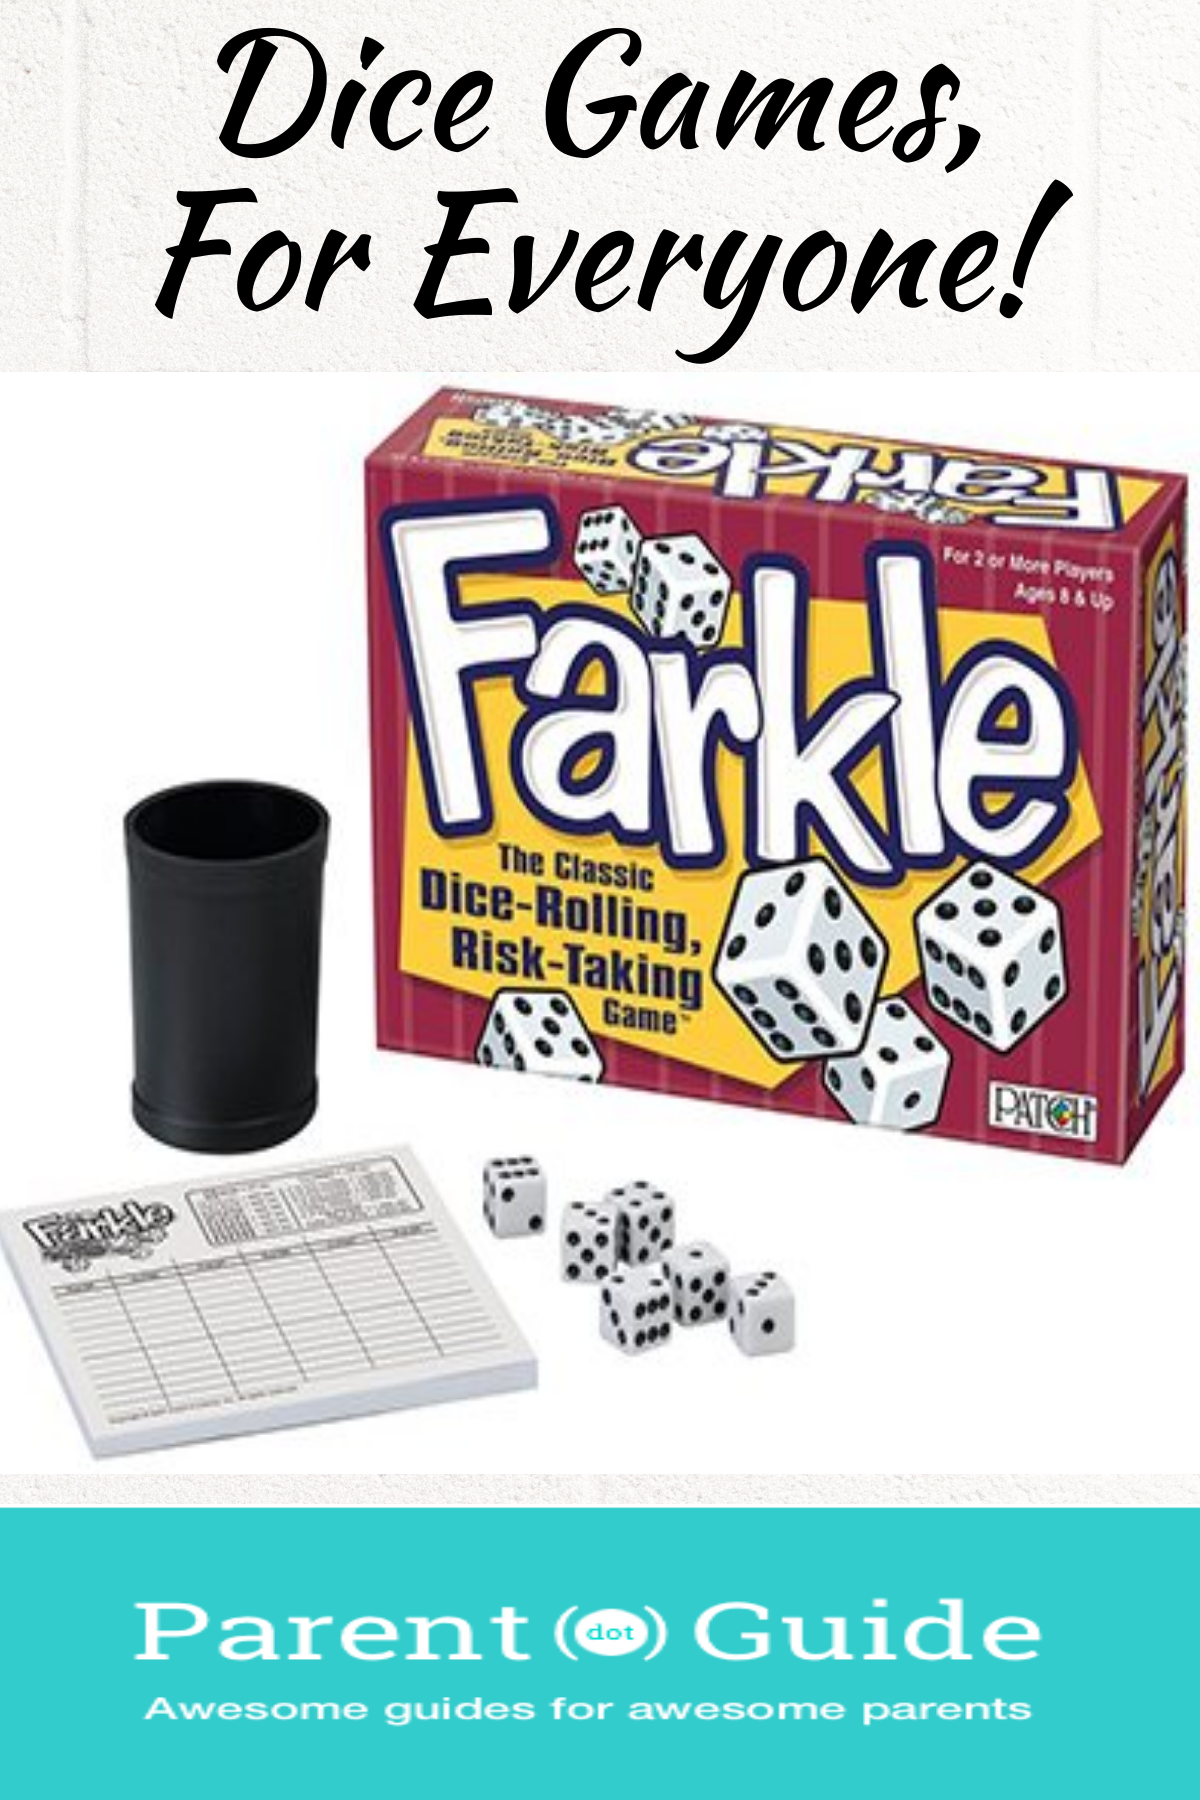 Best Dice Games Dice games, Parenting guide, Games